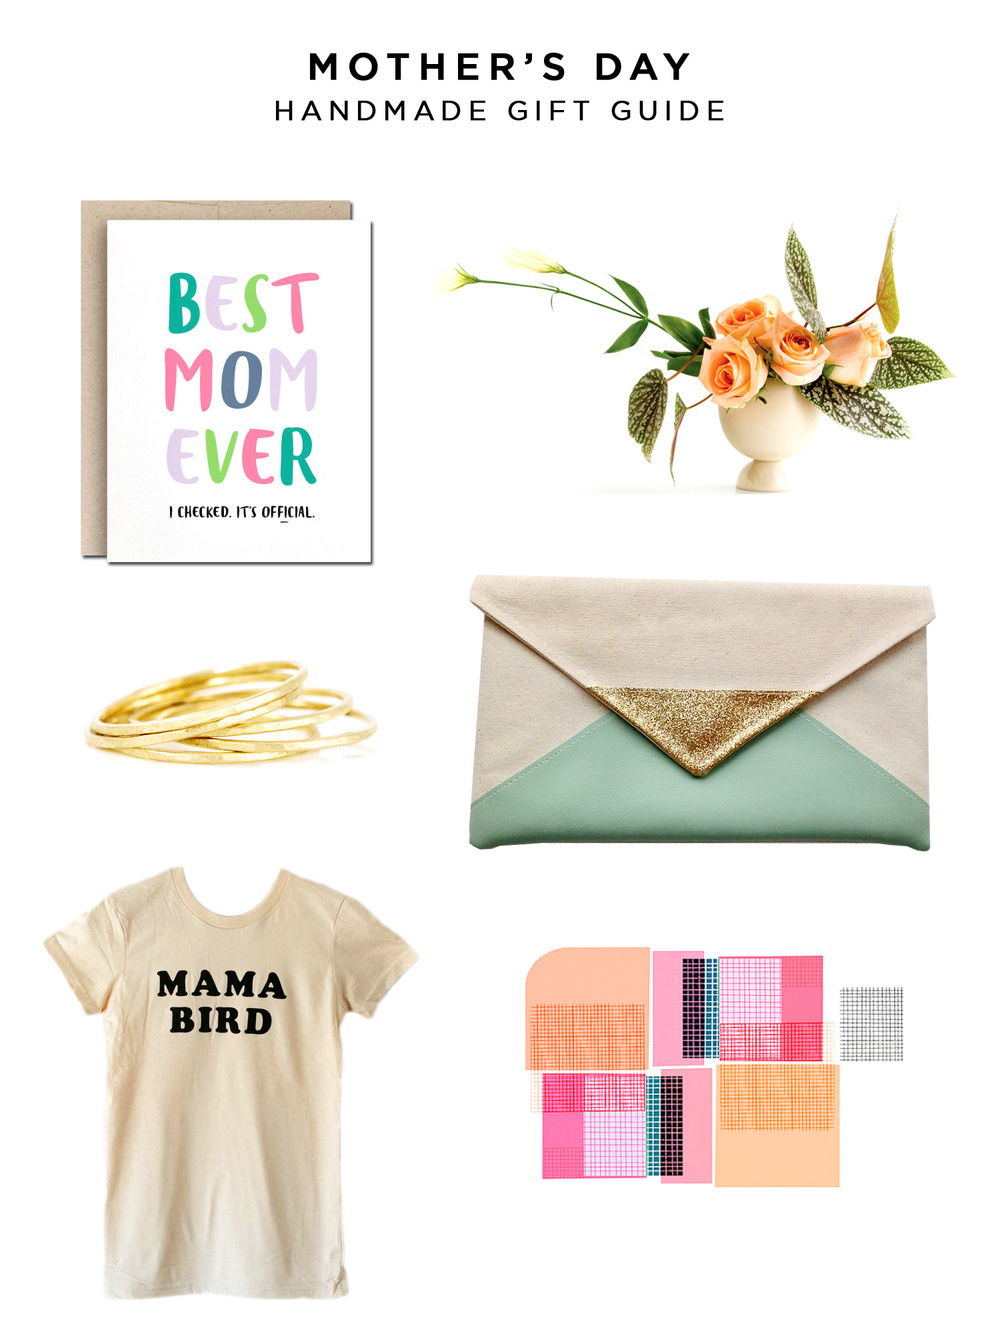 Mother's Day Handmade Gift Guide | Amy Tangerine